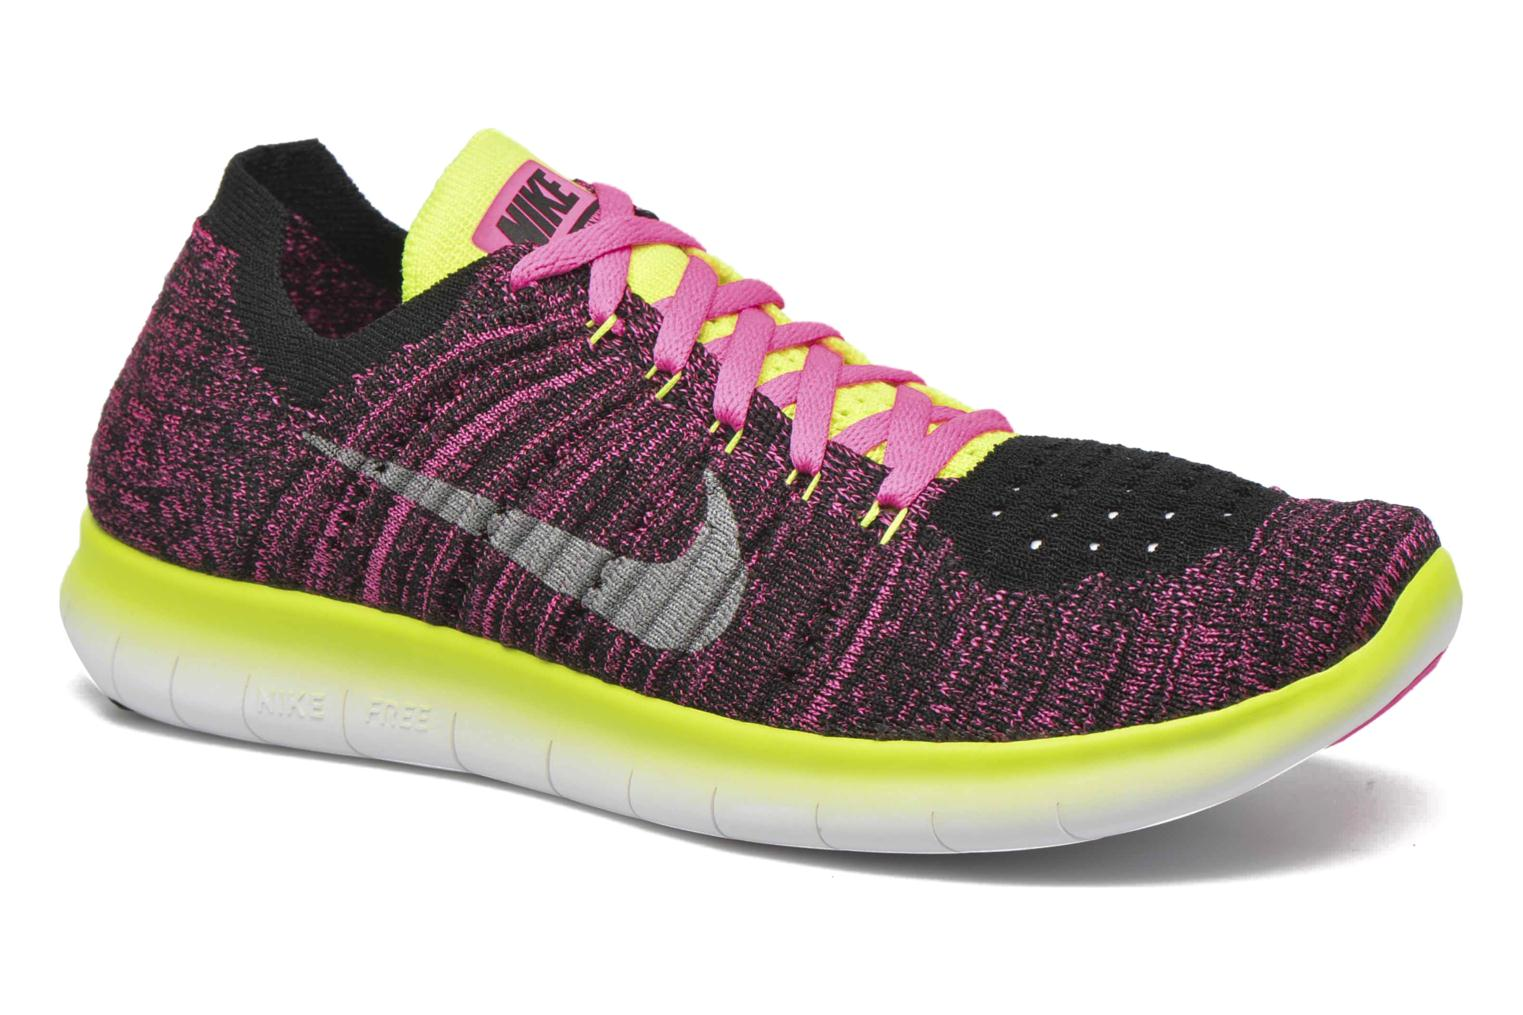 Baskets Nike Nike Free Rn Flyknit (Gs) Rose vue détail/paire